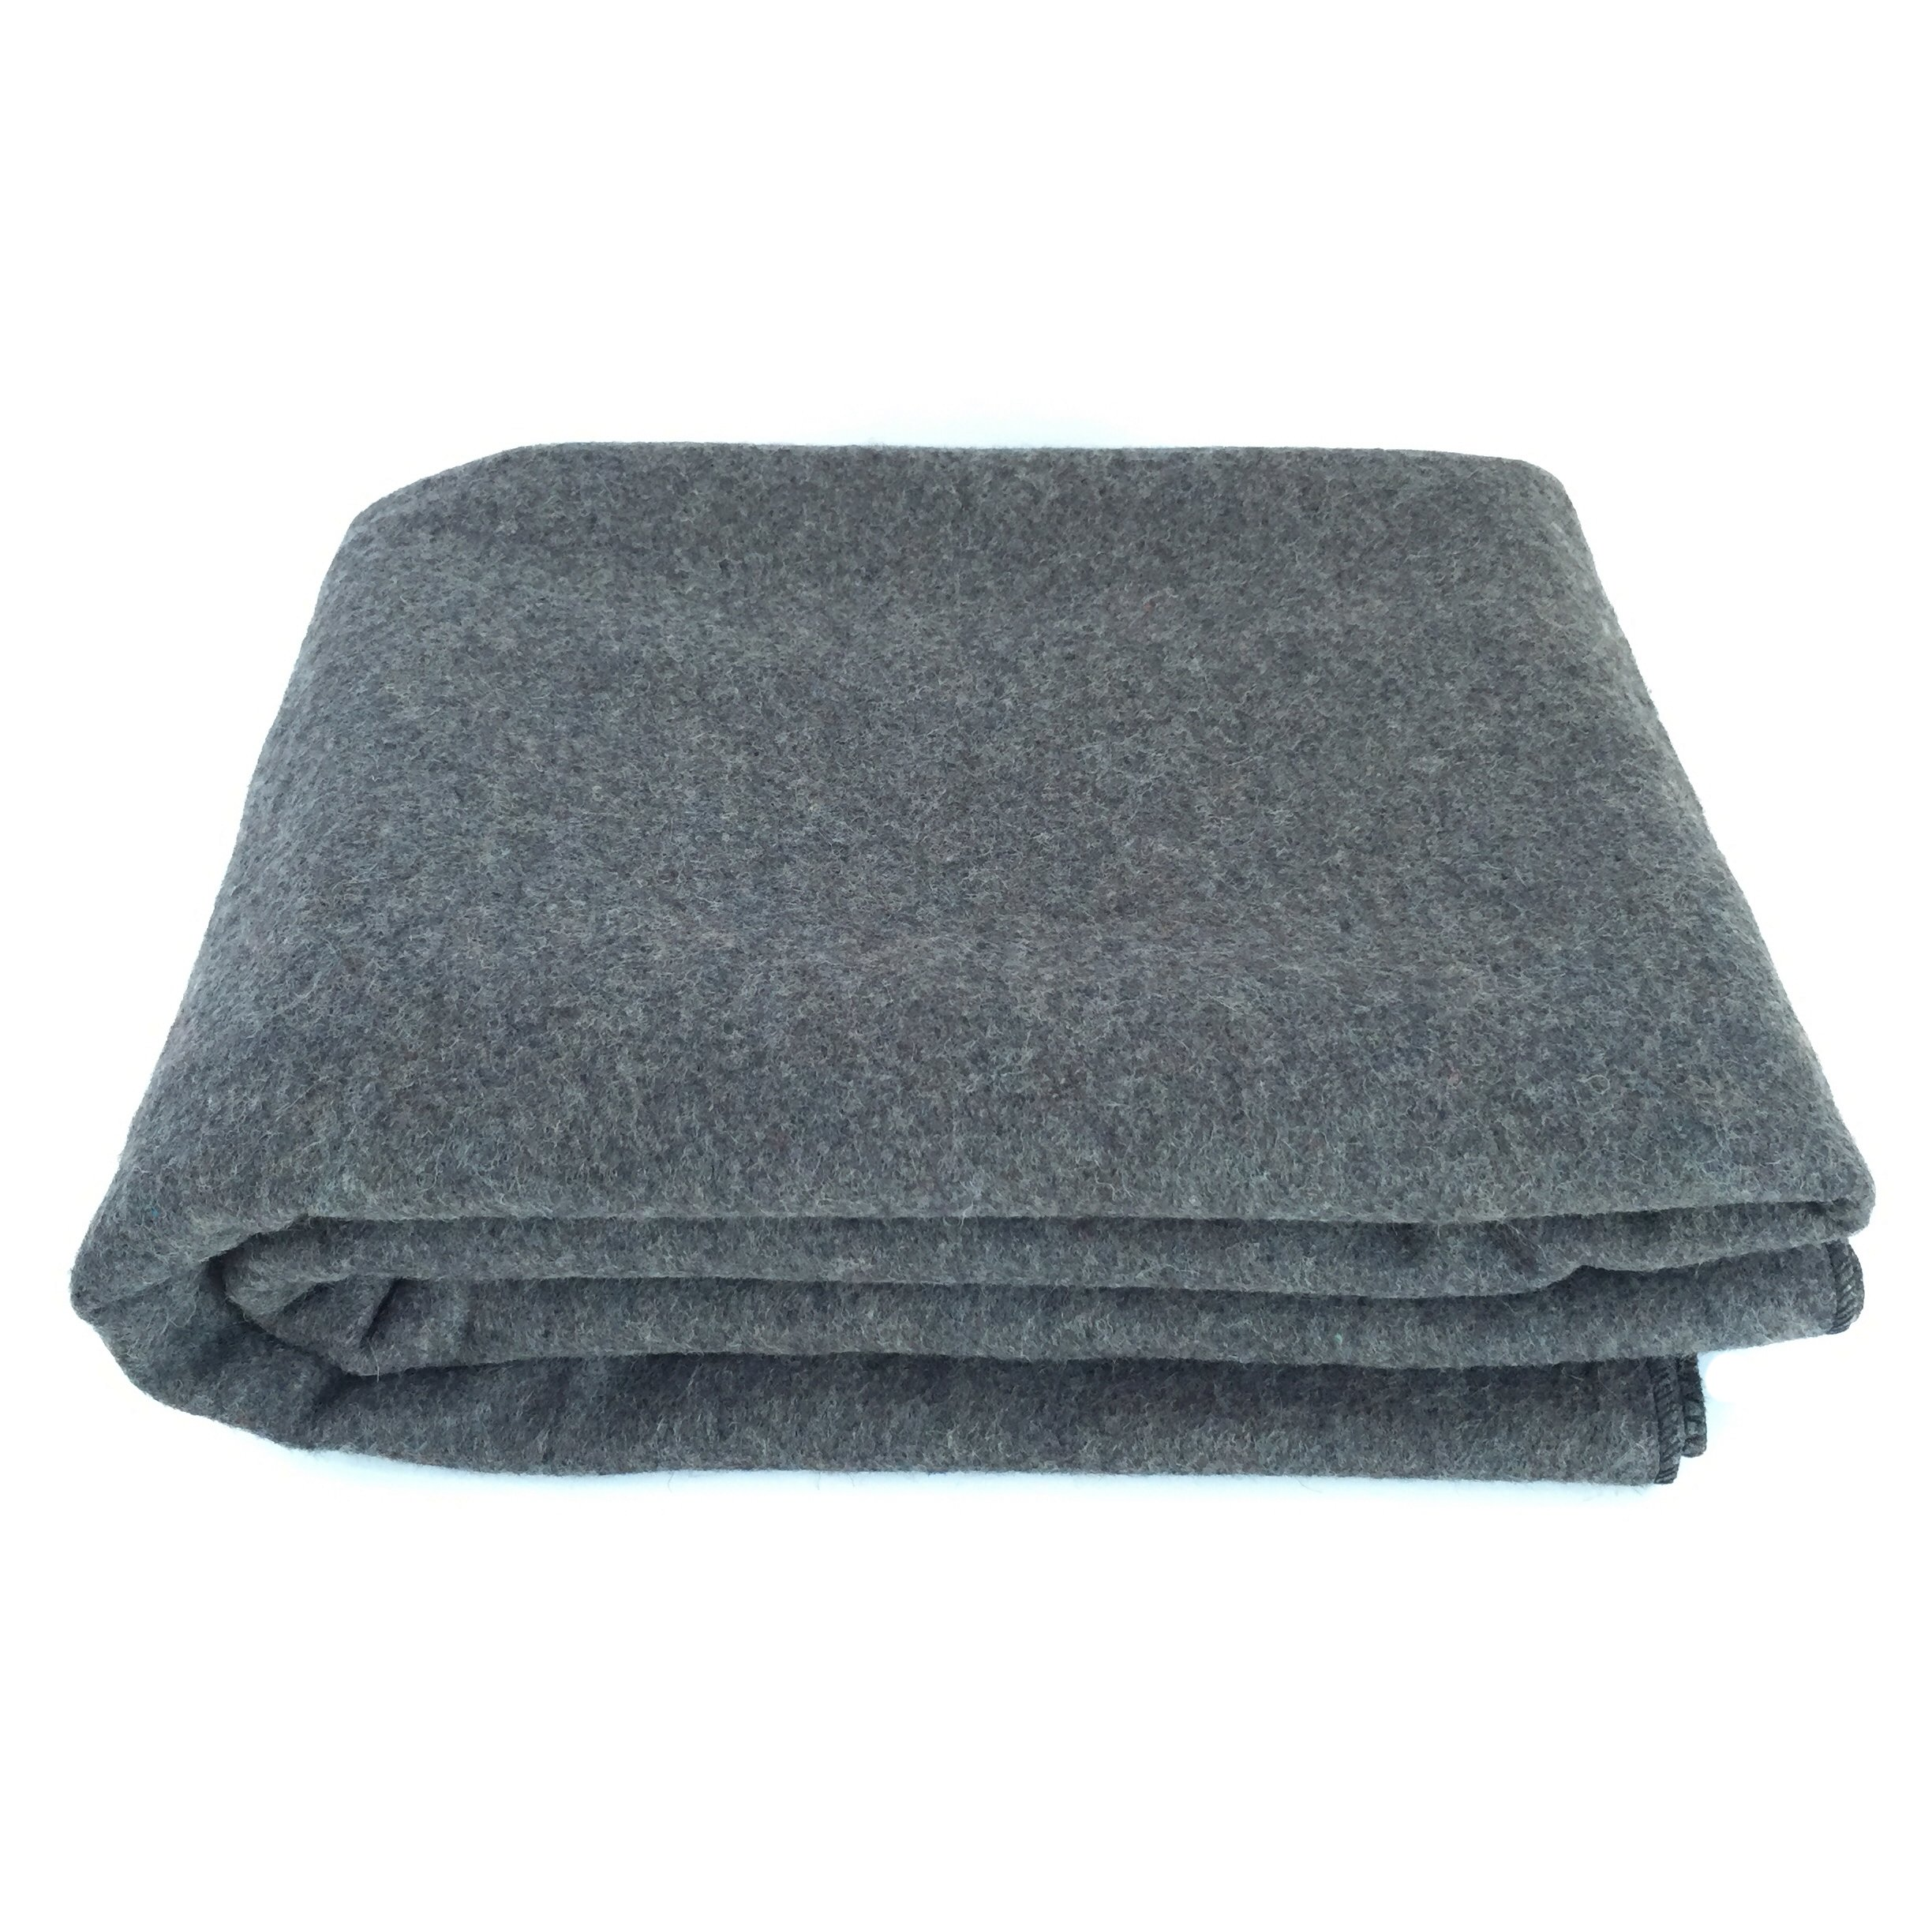 EKTOS 90% Wool Blanket, Grey, Warm & Heavy 4.4 lbs, Large Washable 66''x90'' Size, Perfect for Outdoor Camping, Survival & Emergency Preparedness Use